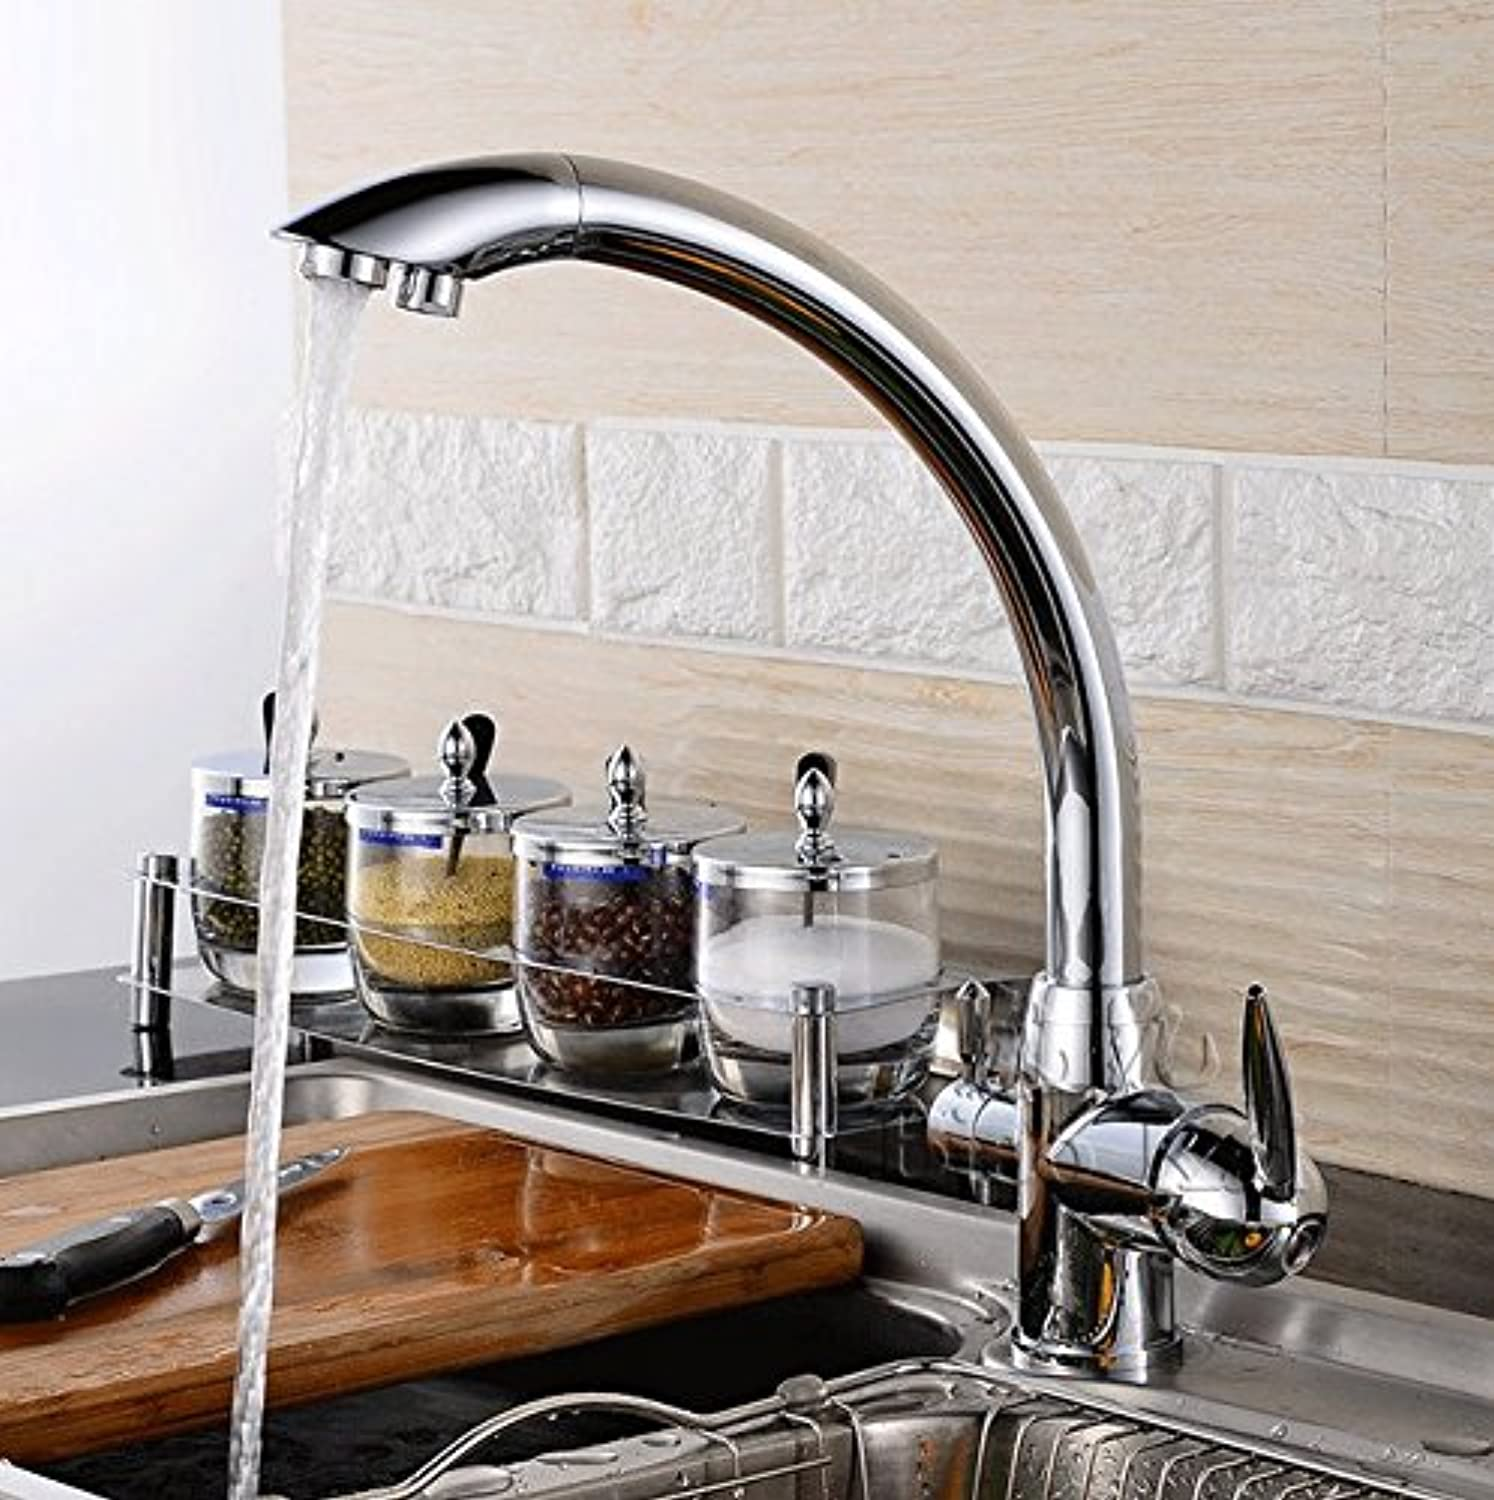 Mangeoo Faucet All Copper Lead-Free Water Faucet Kitchen Cooling Hot Mixing Faucet Wash Basin Pots Tap Water Dual Use